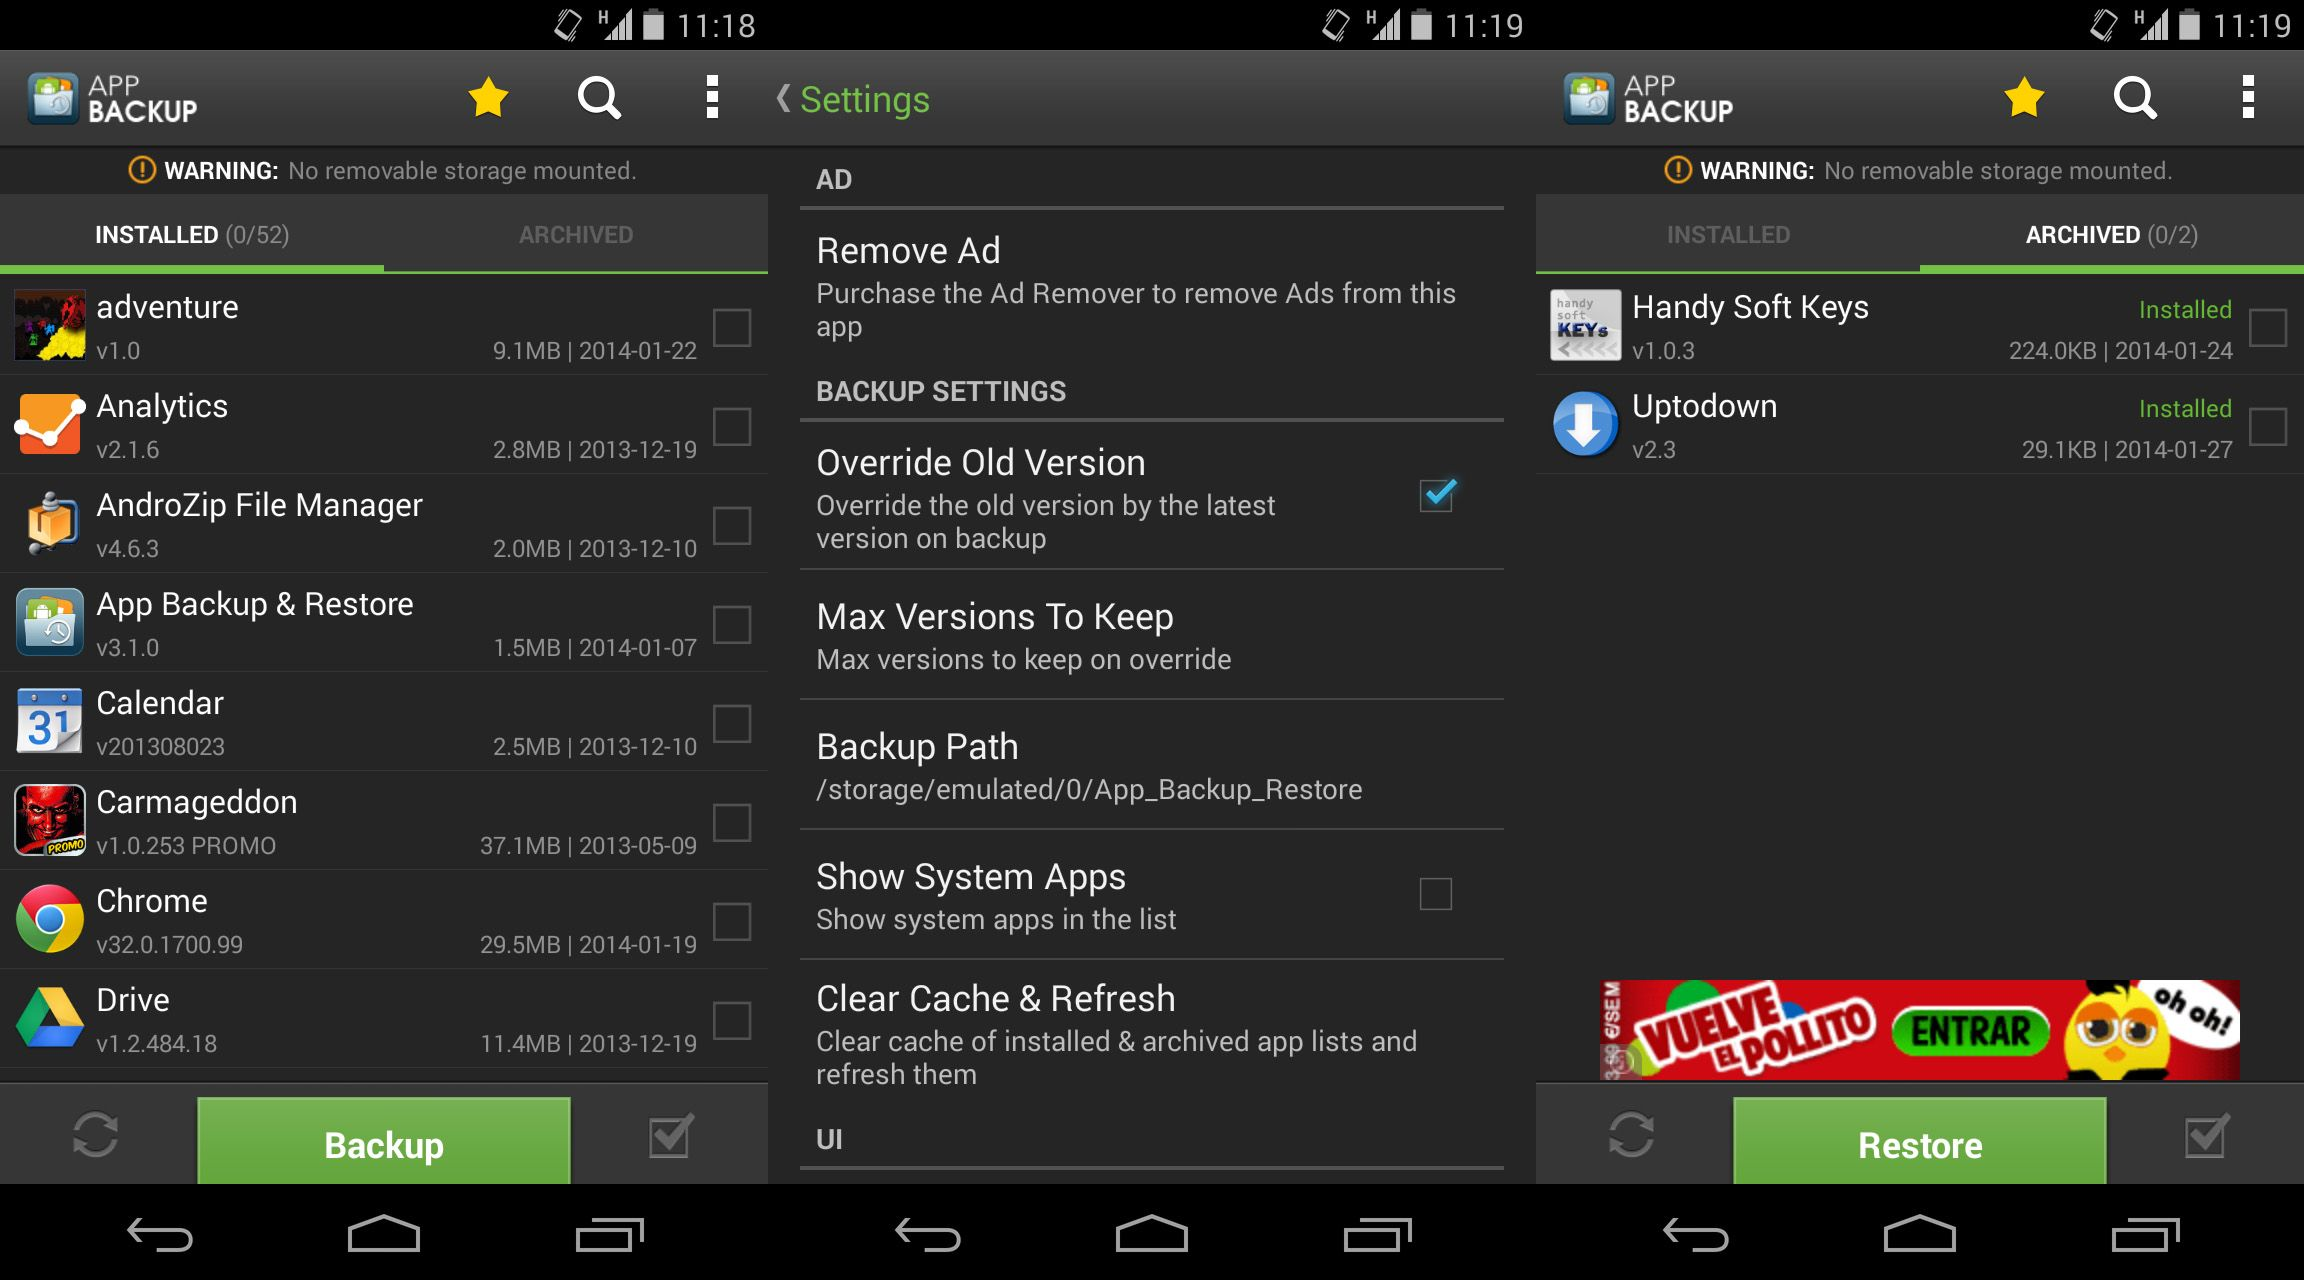 How to make APK backup copies of your Android apps